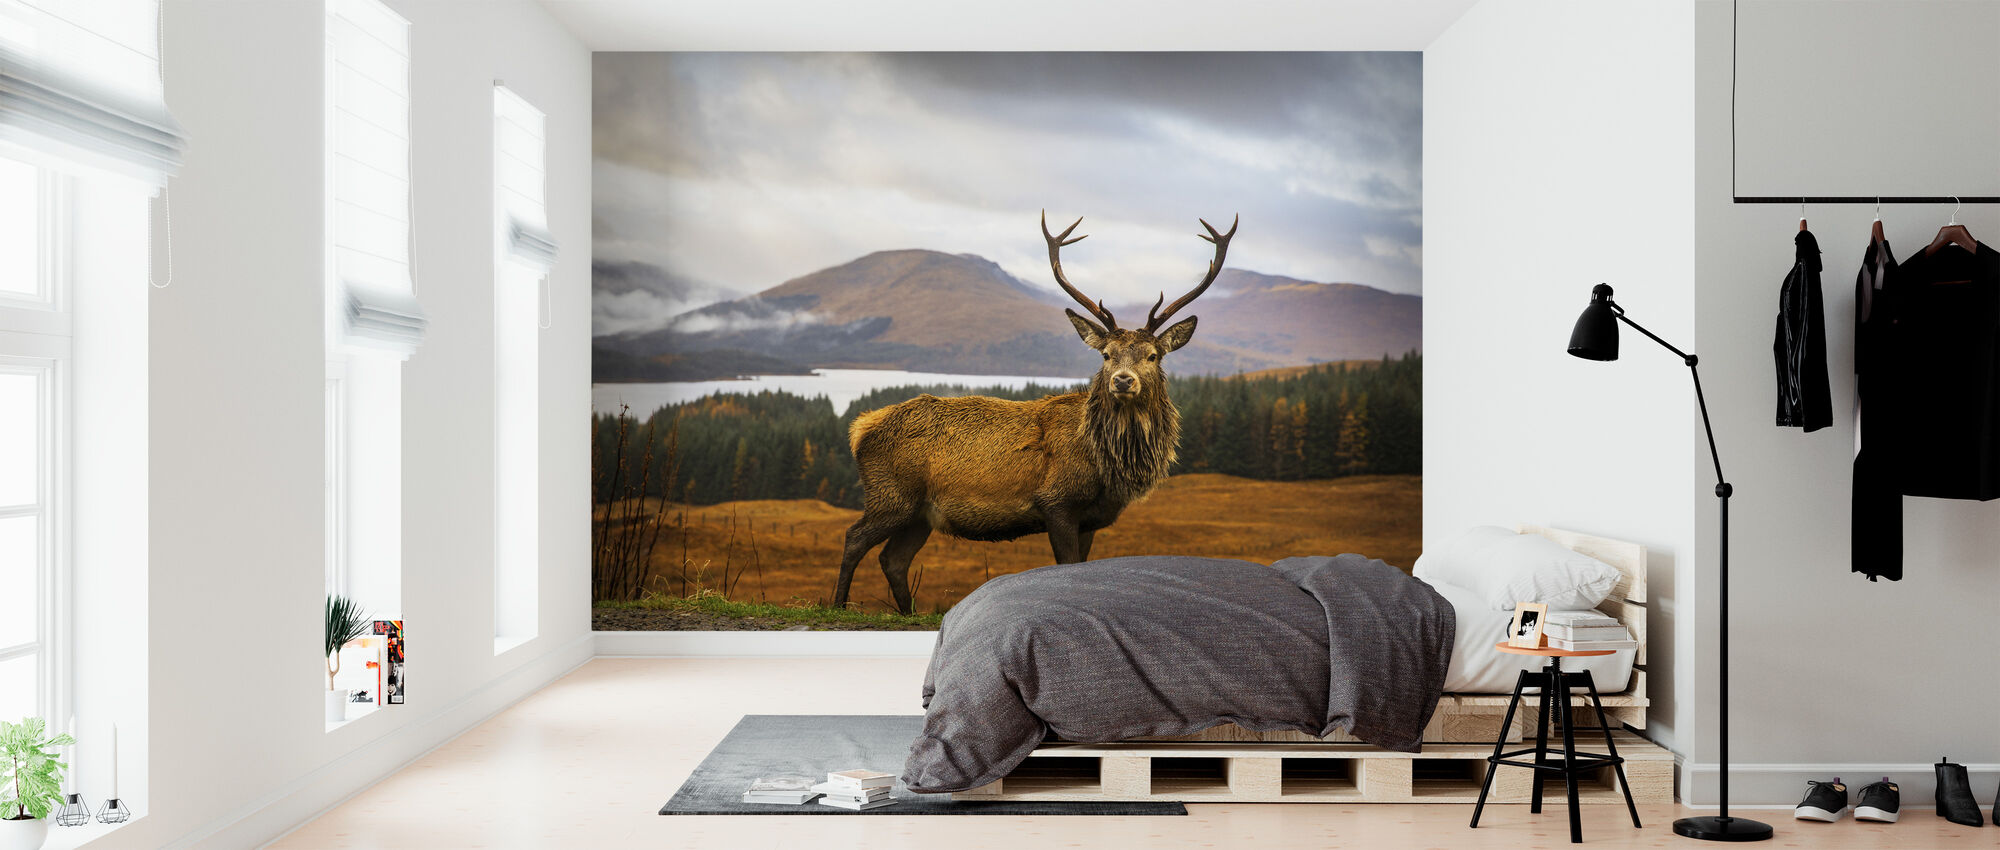 Scottish Stag - Wallpaper - Bedroom